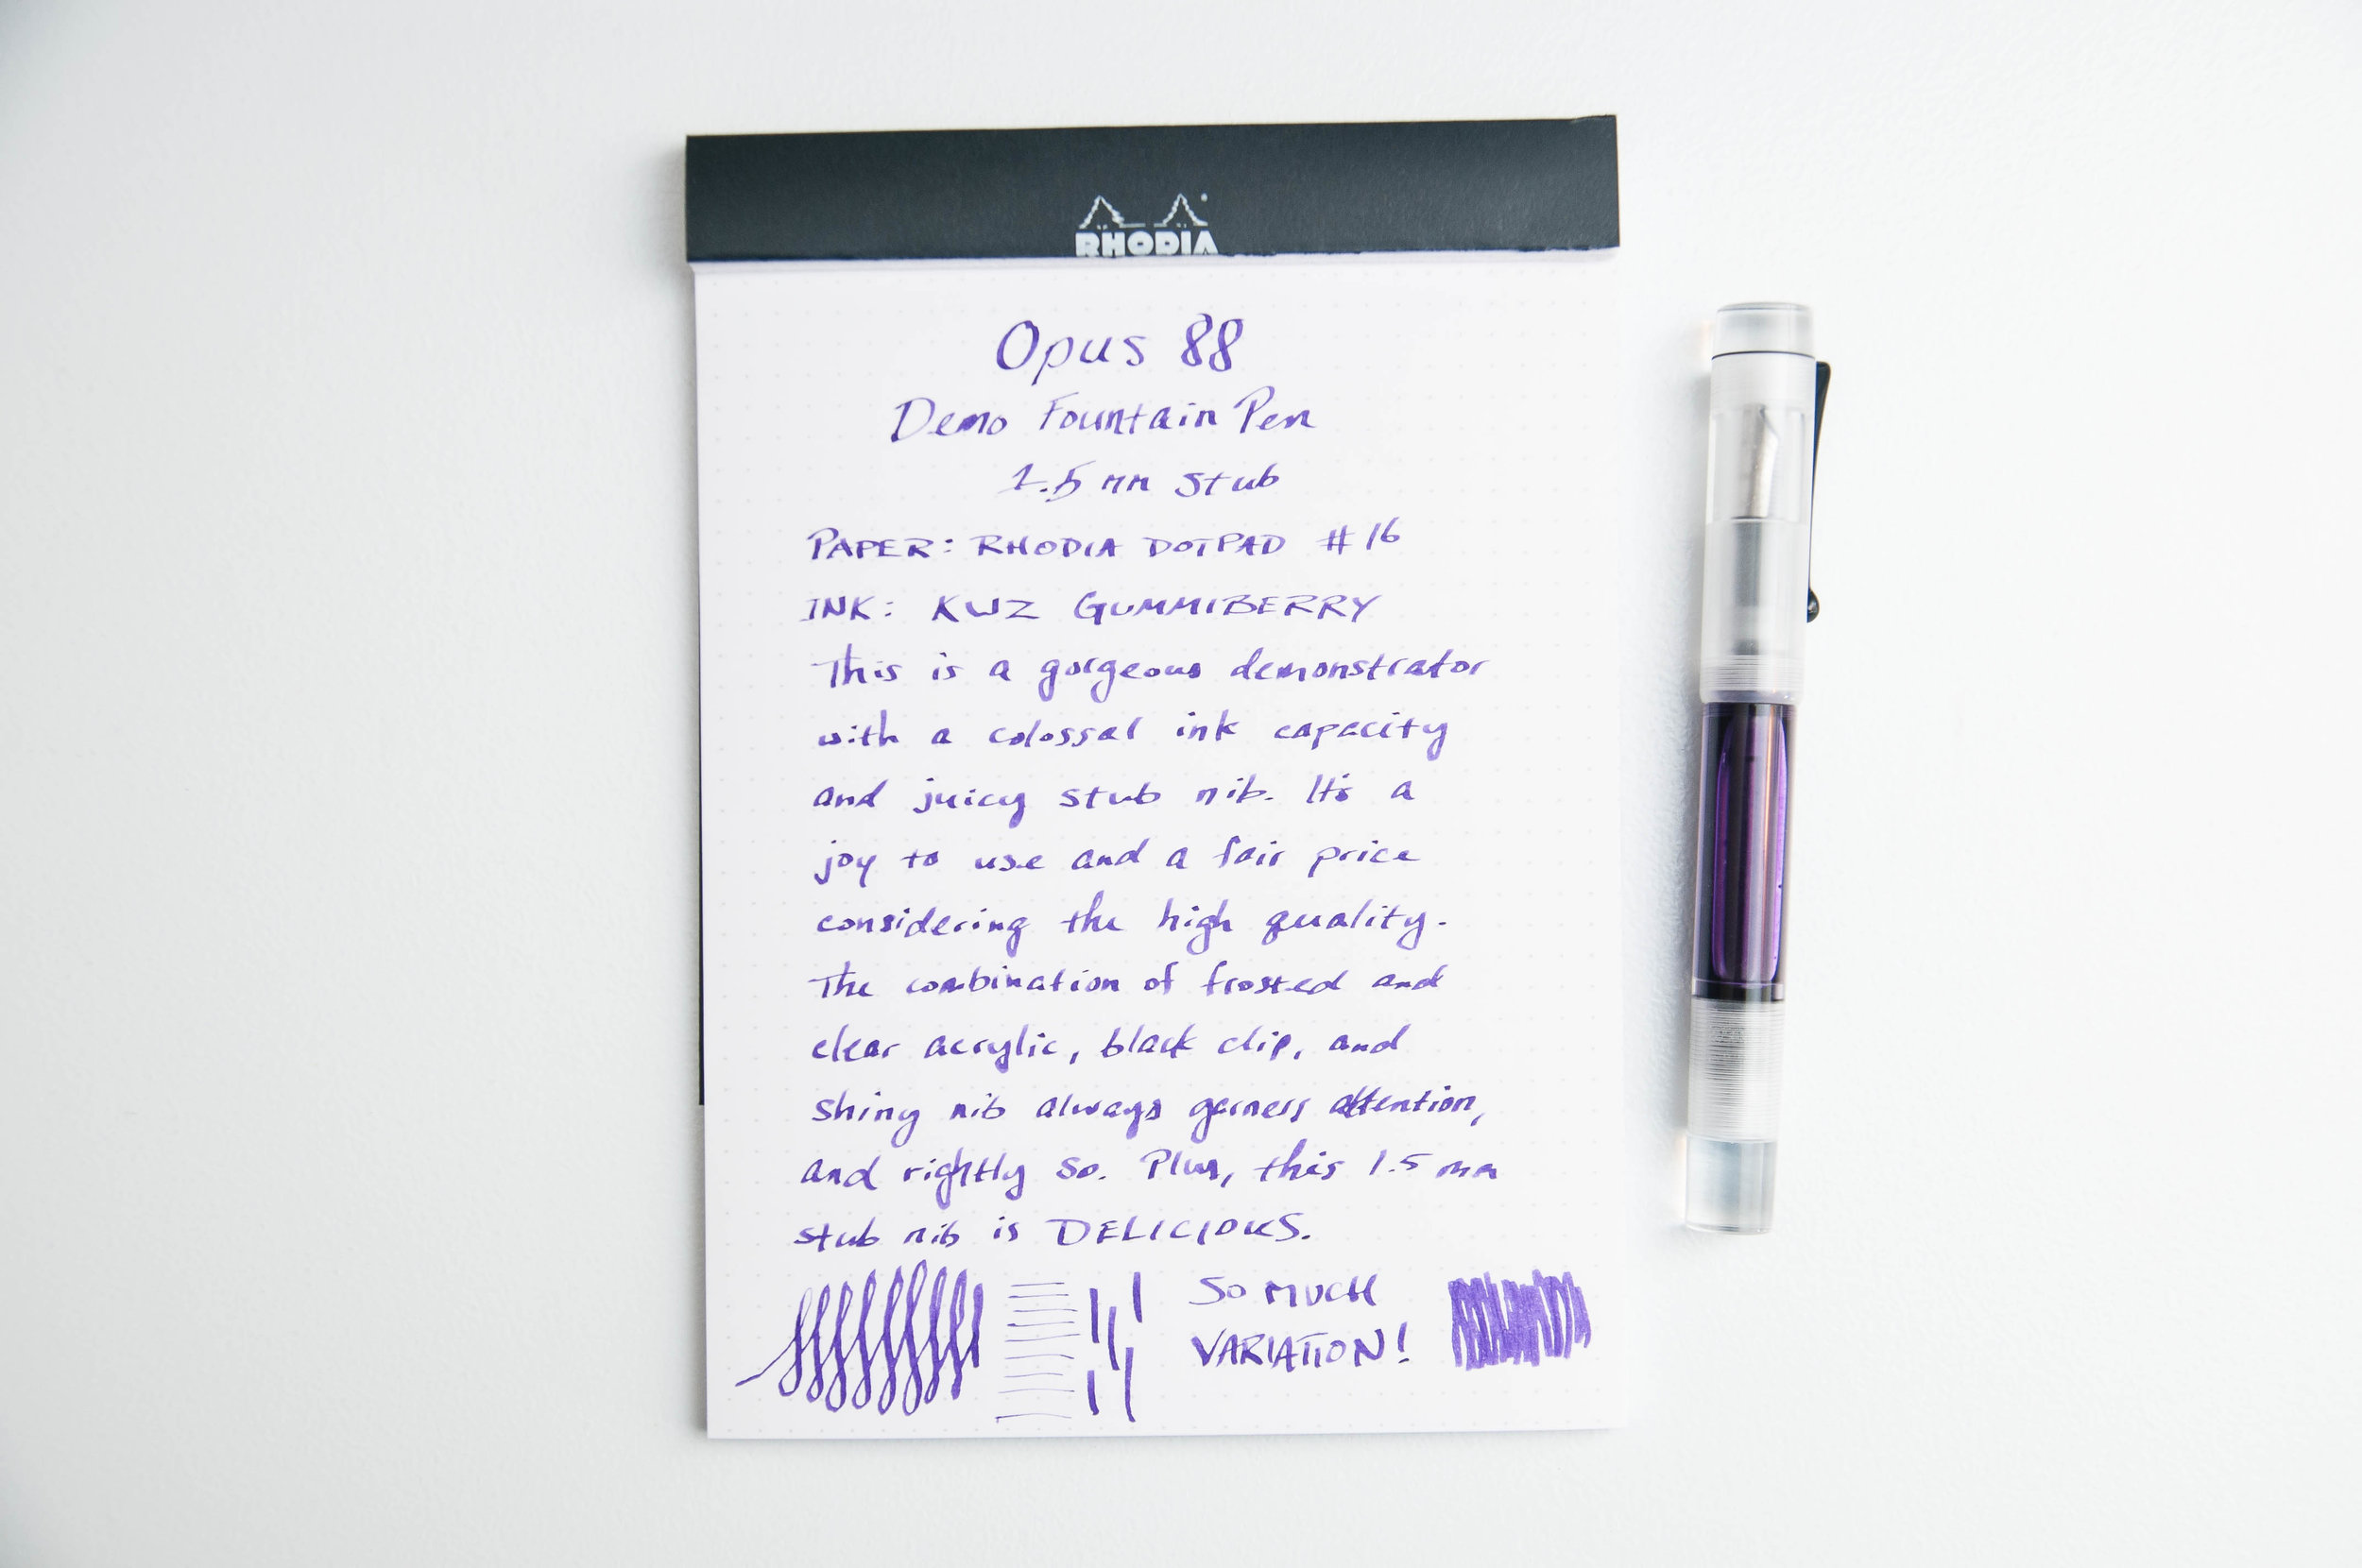 Opus 88 Demonstrator Writing